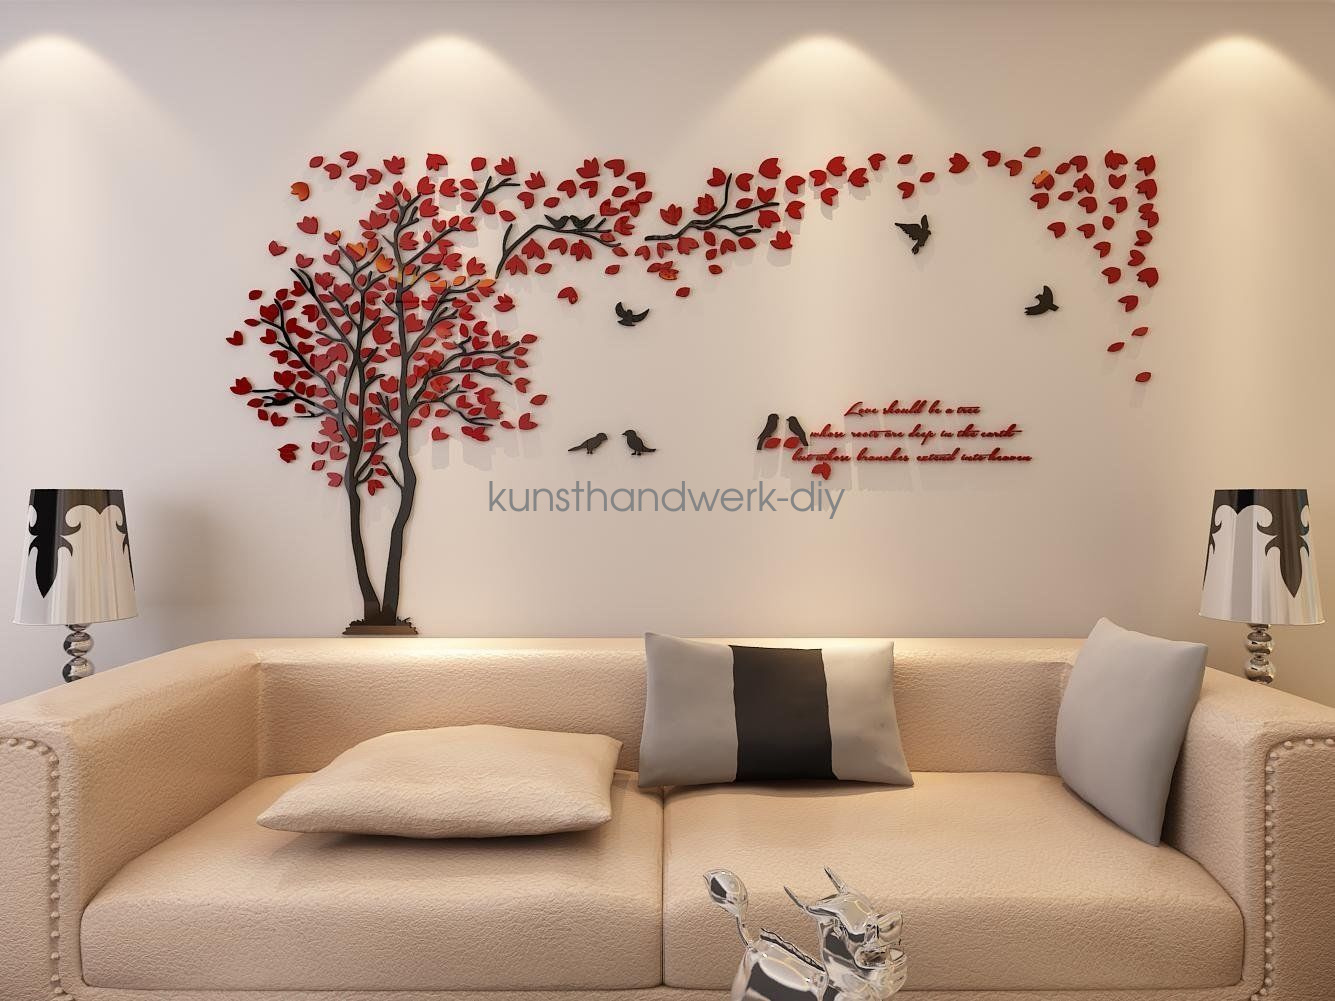 Us couple tree 3d wall stickers living room bedroom mural - Wall sticker ideas for living room ...